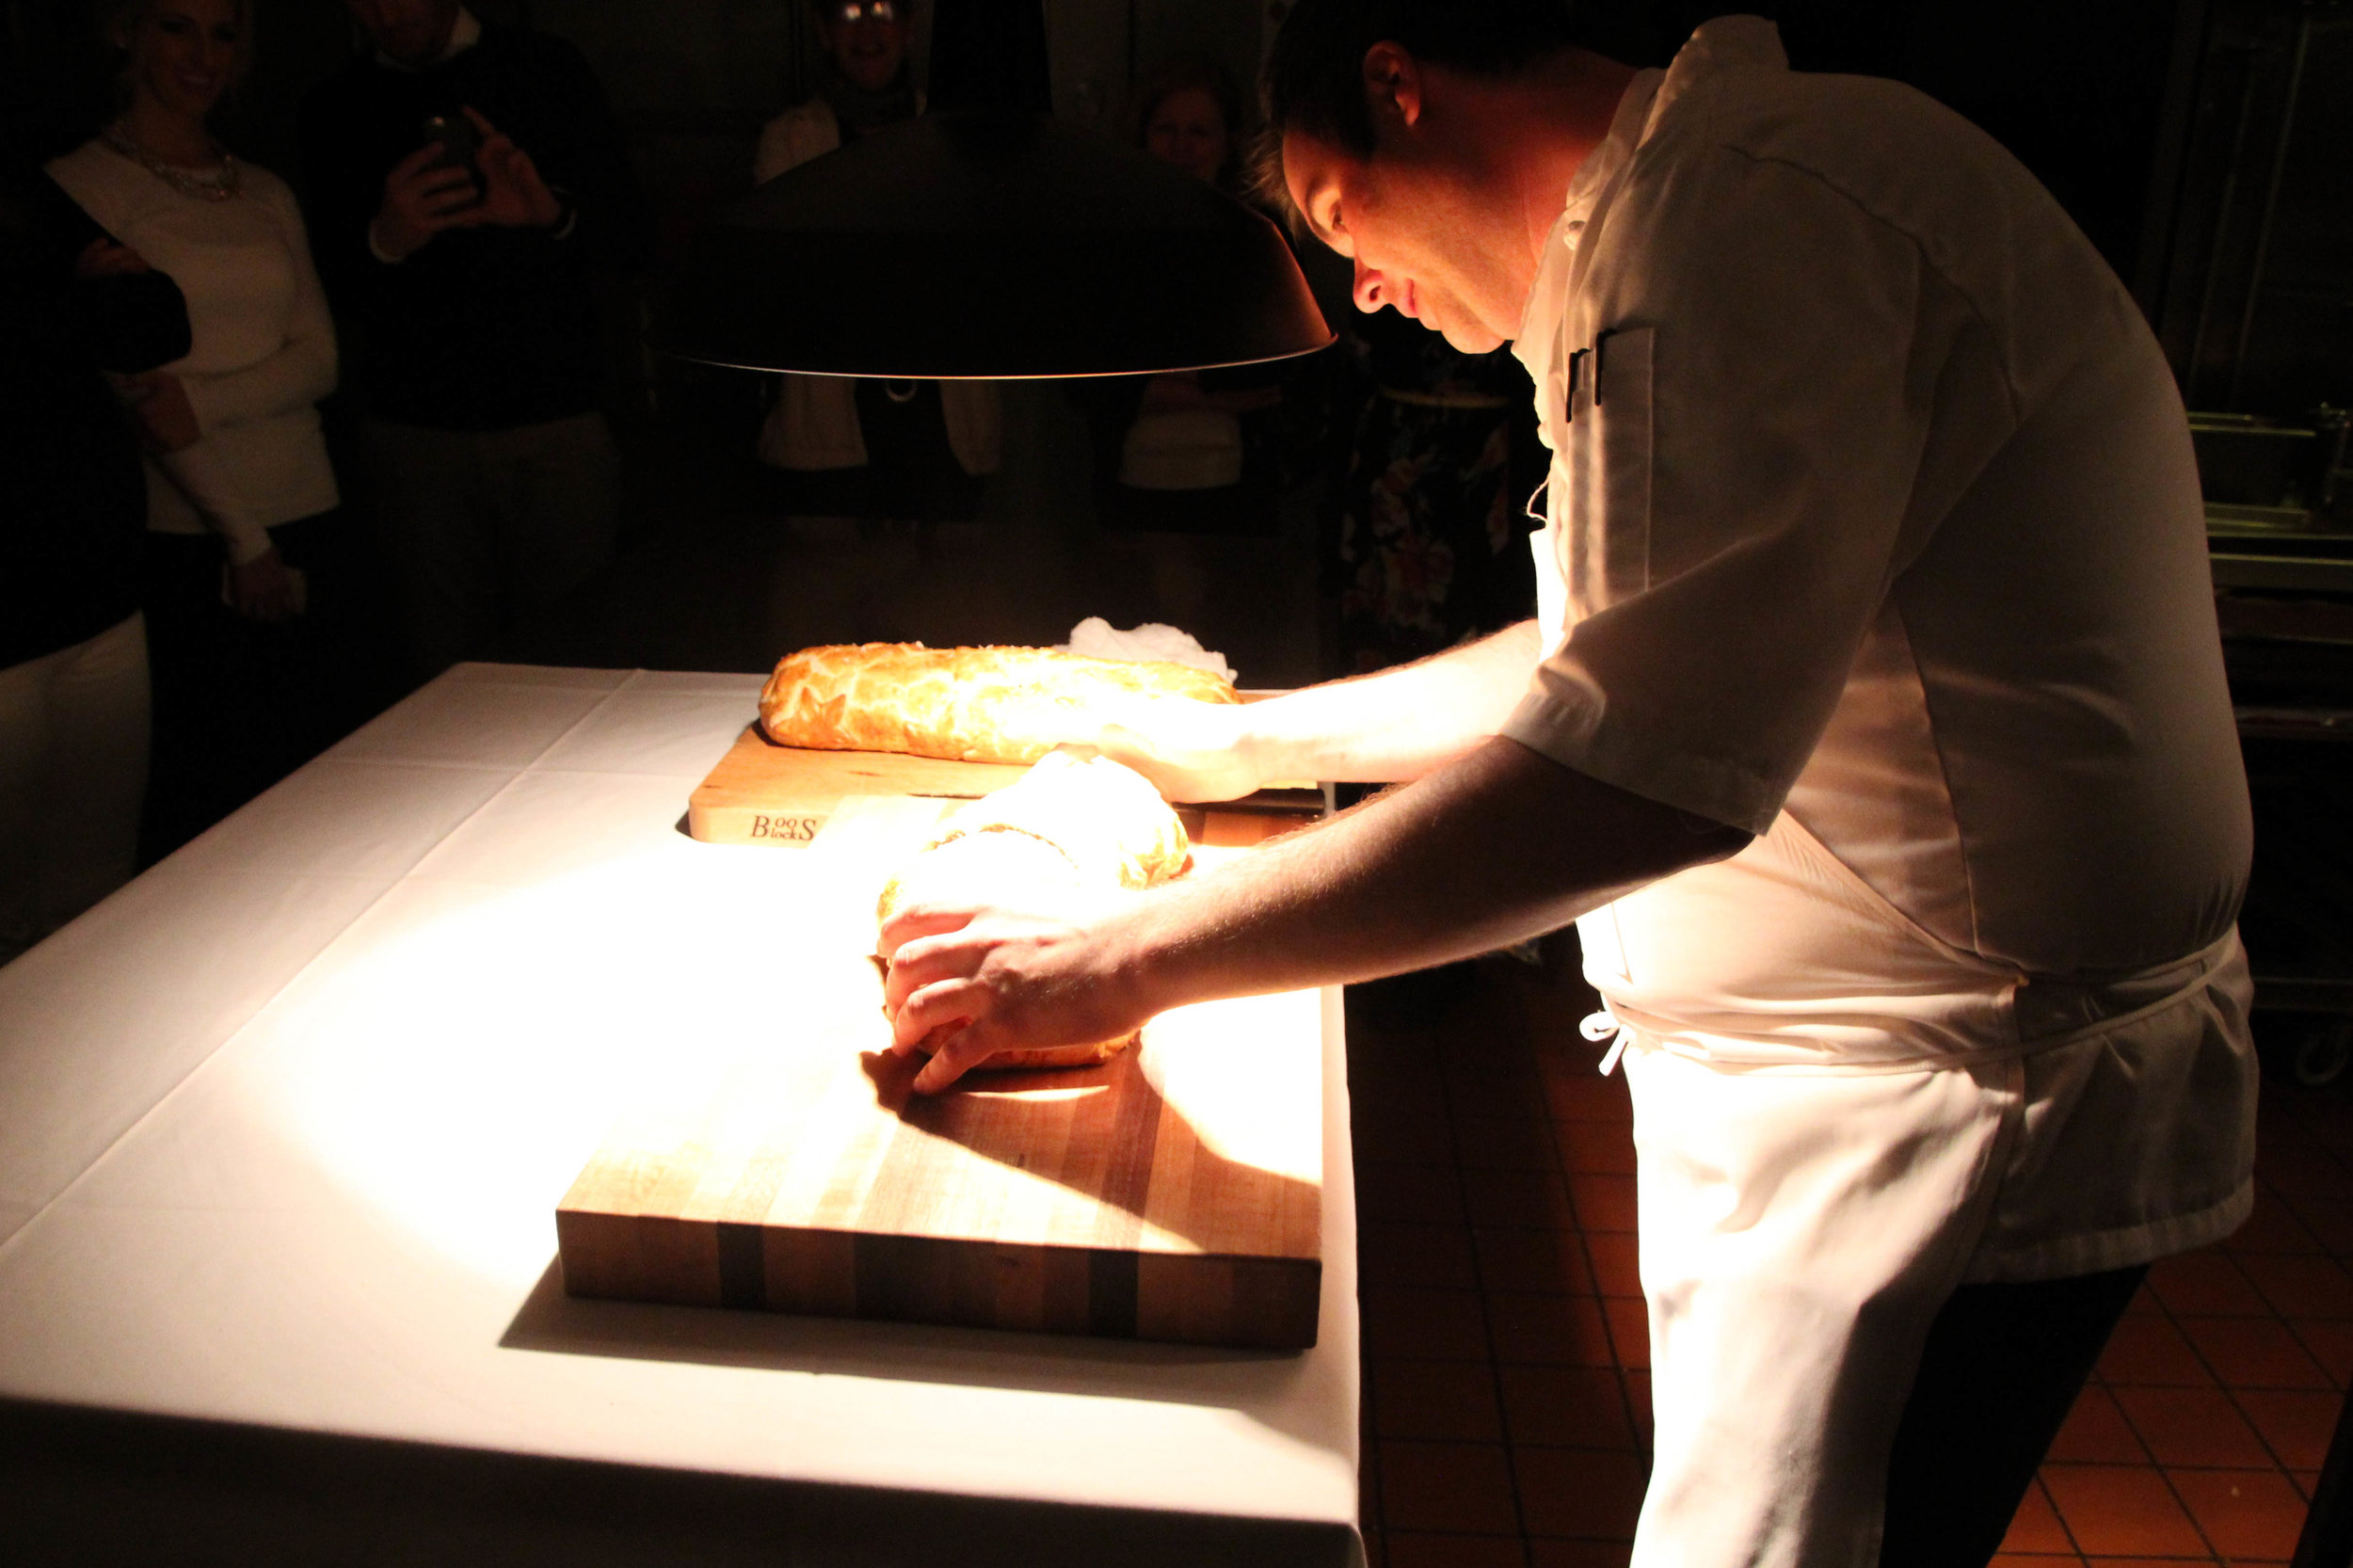 Slicing open the baked beef Wellington